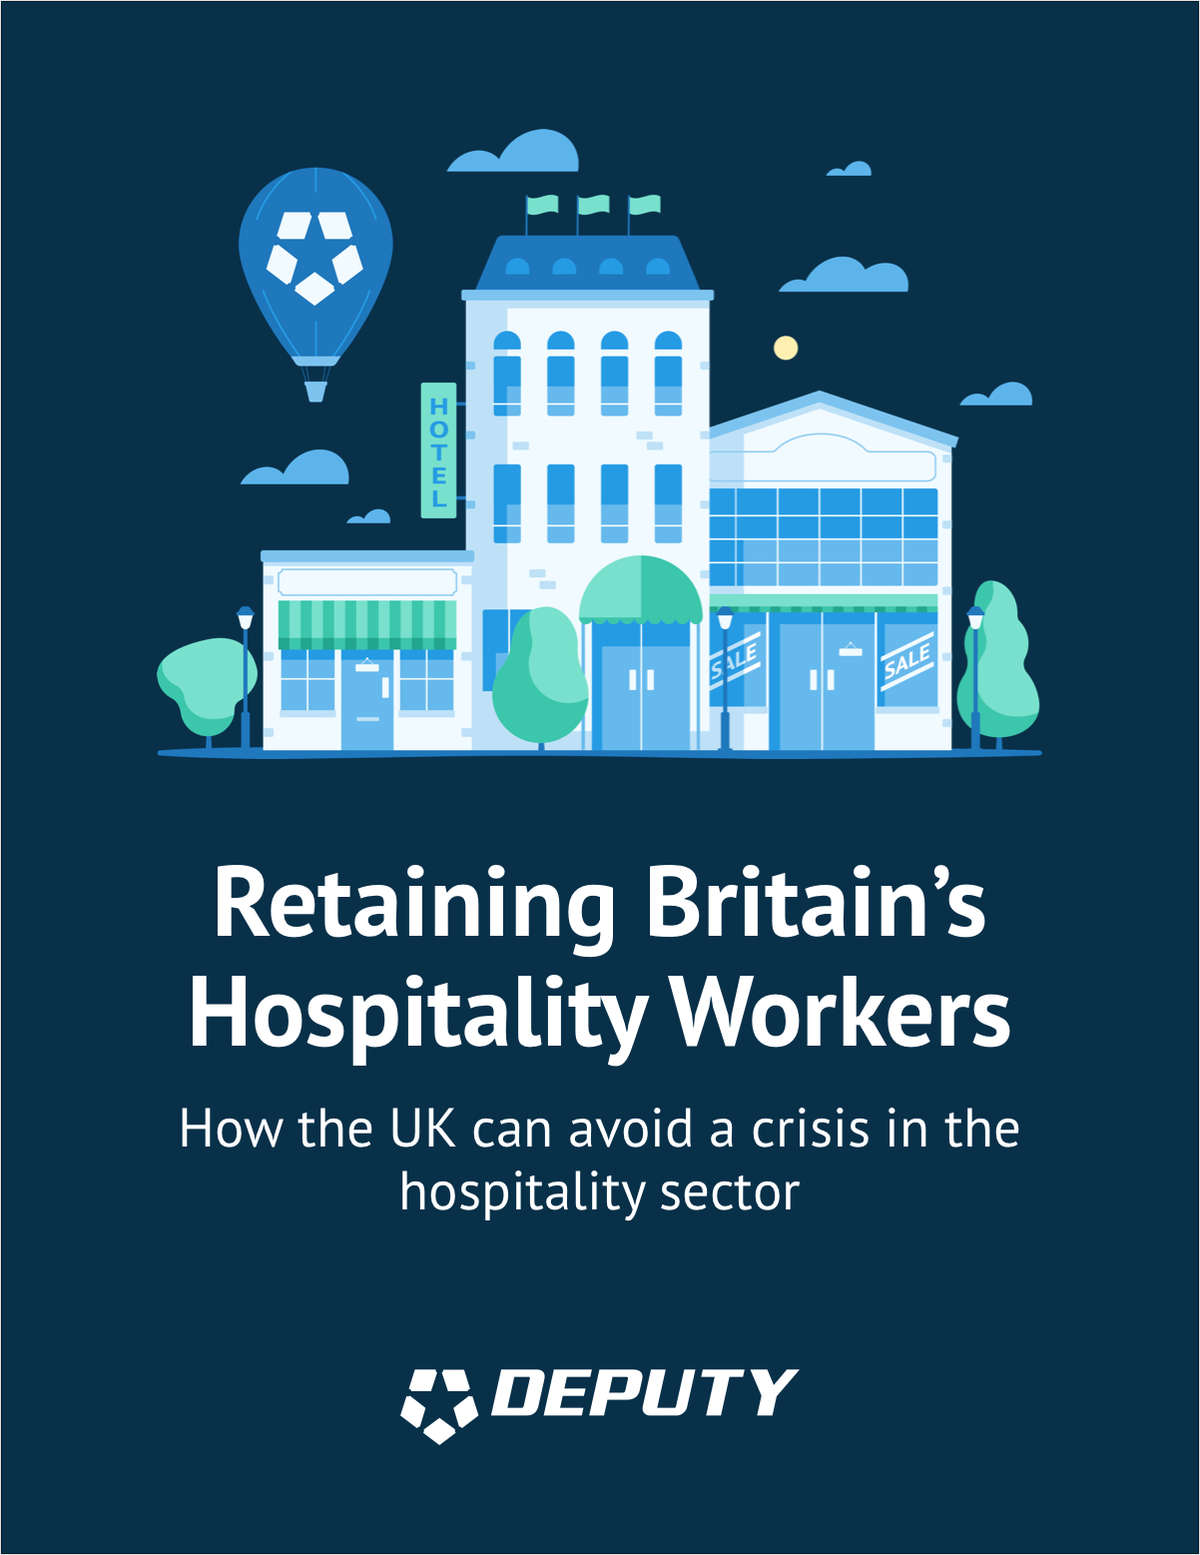 Retaining Britain's Hospitality Workers